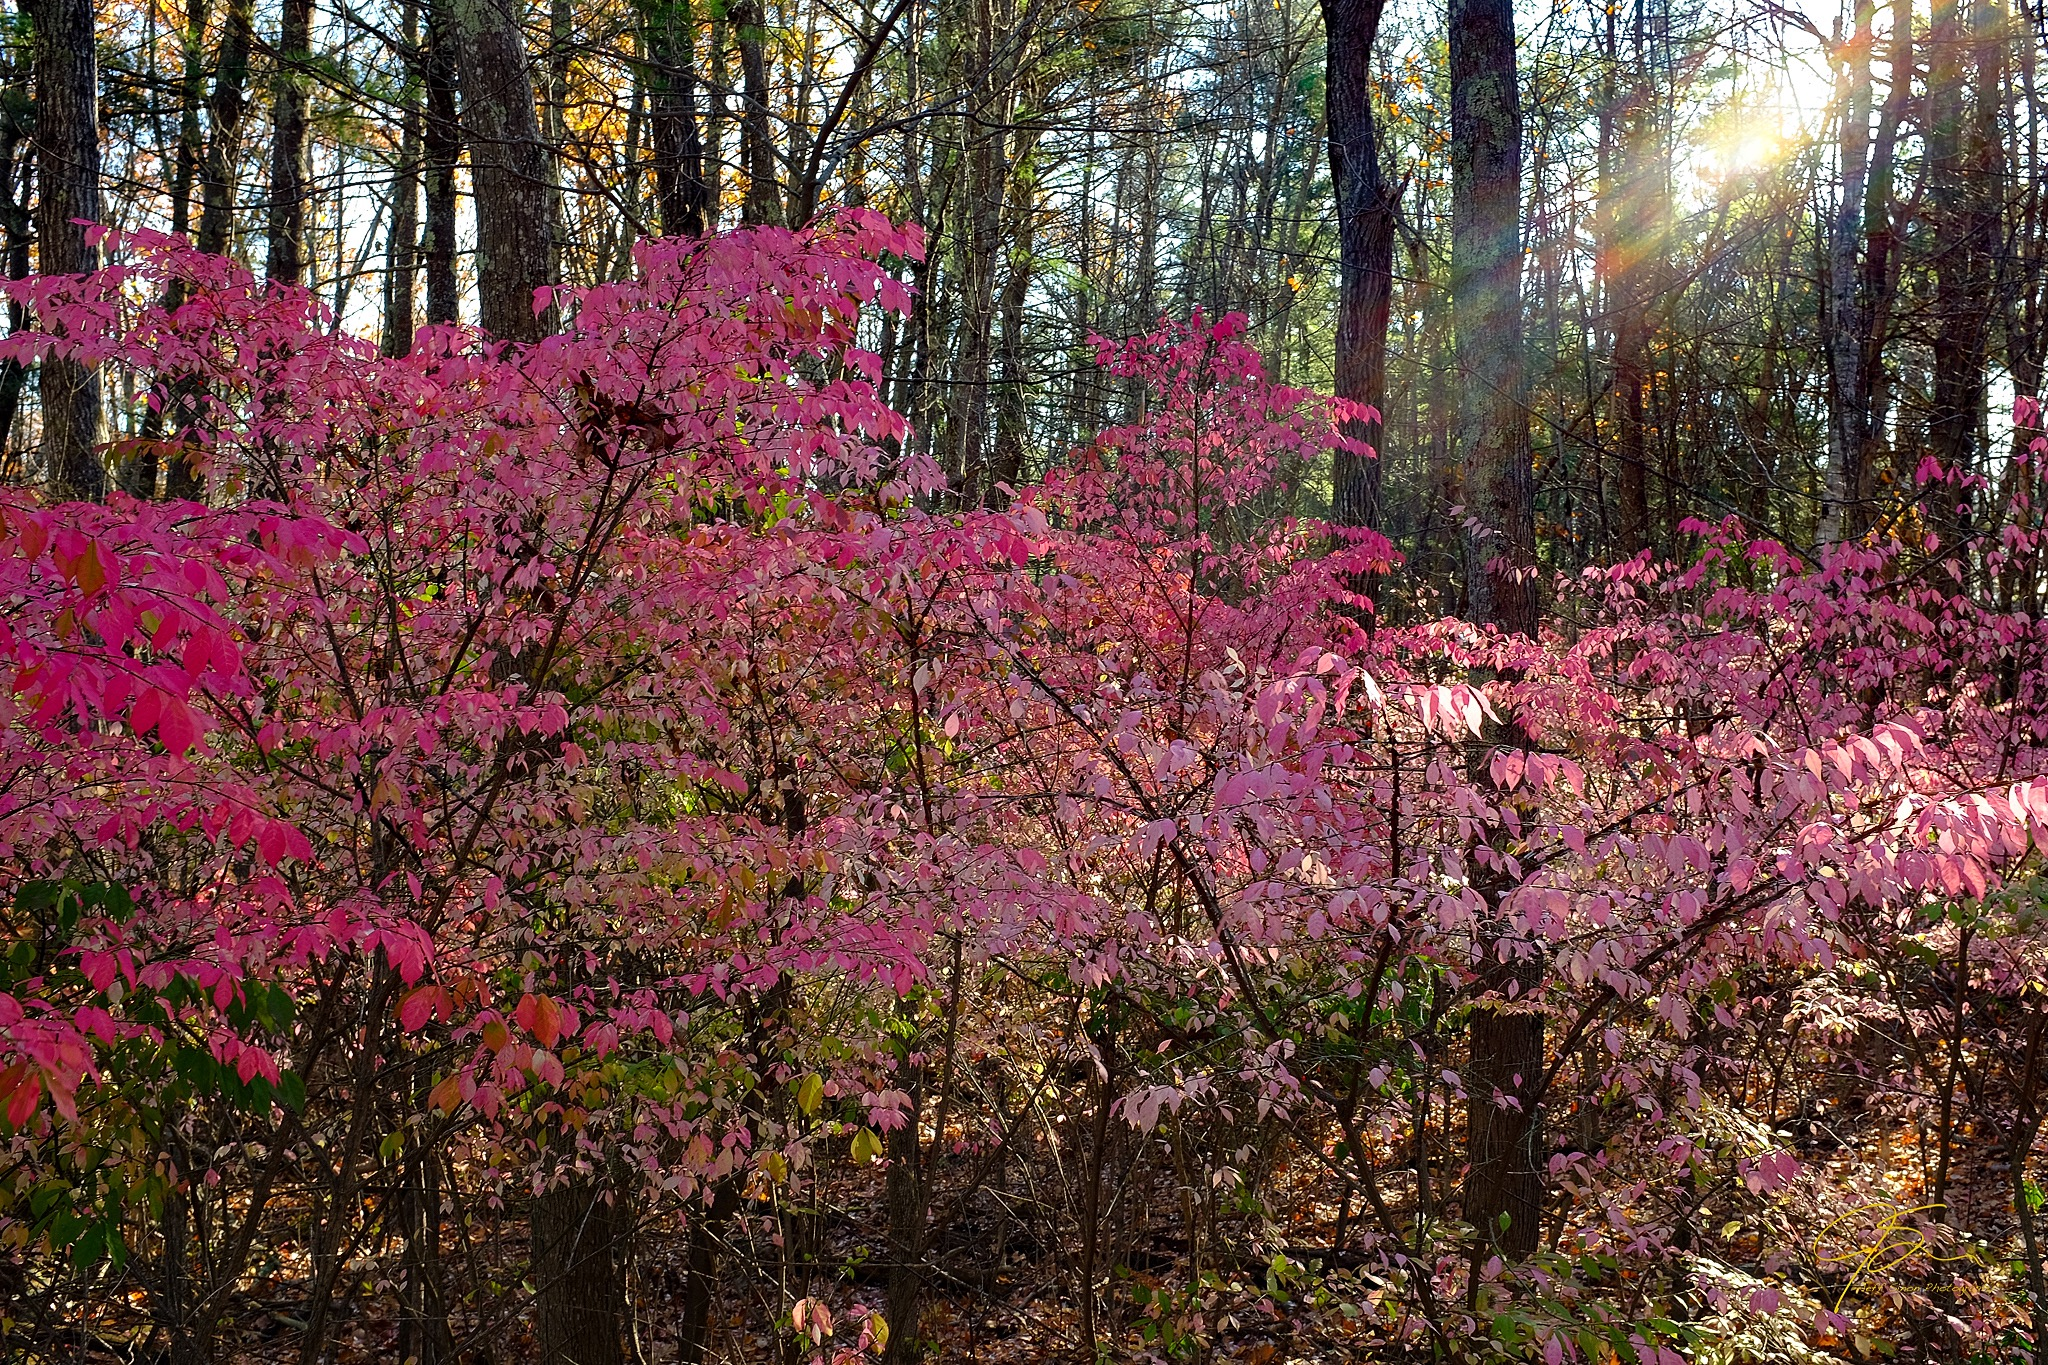 burning bush in the sunlight